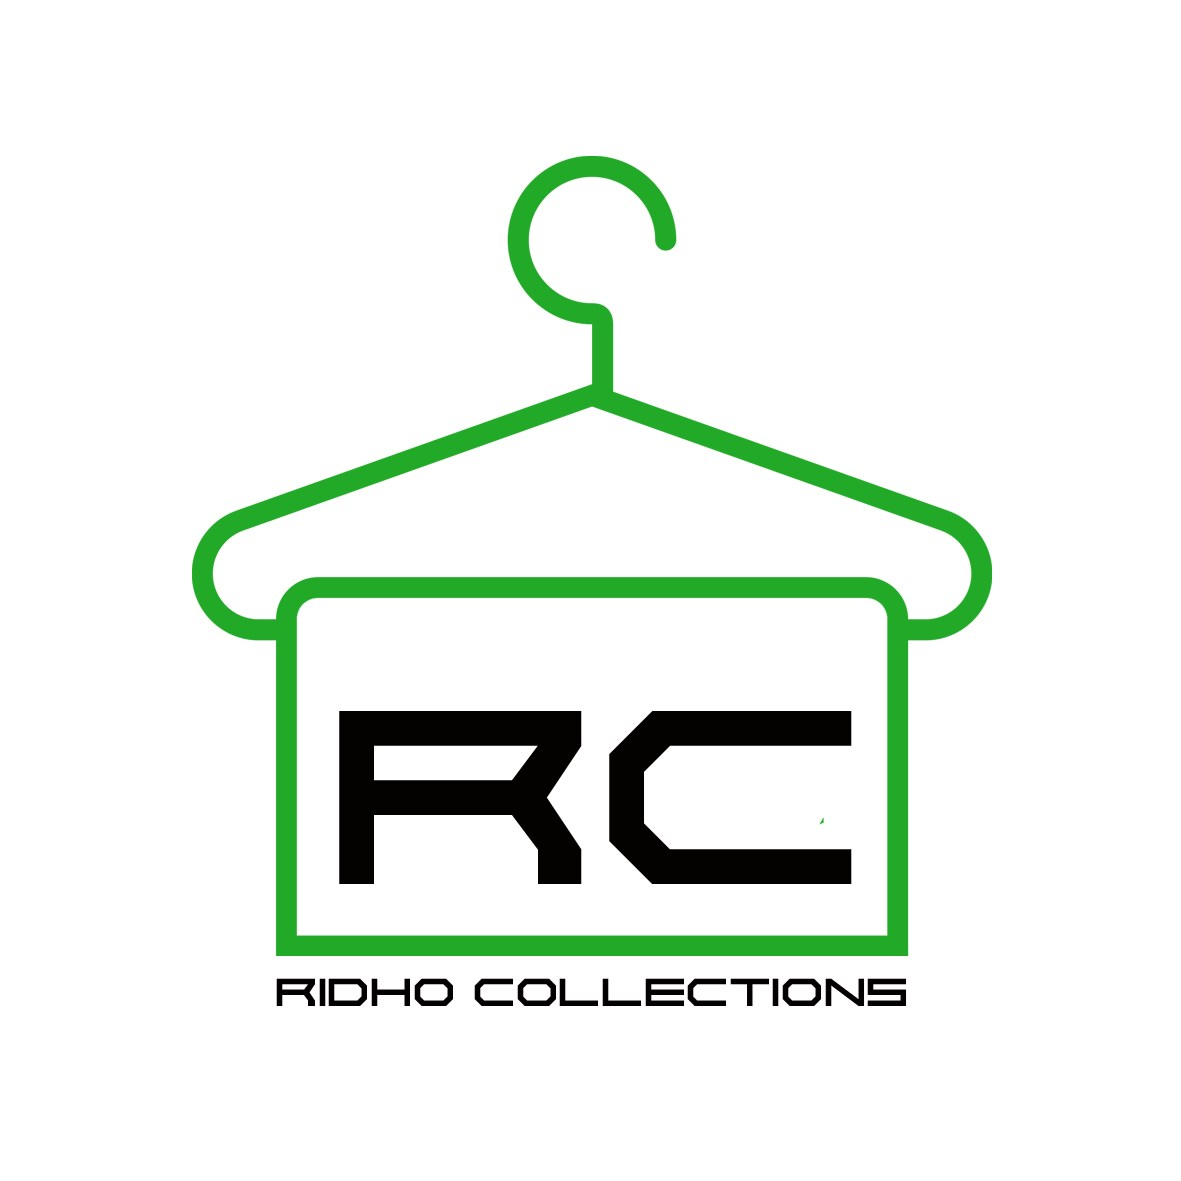 Ridho Collections